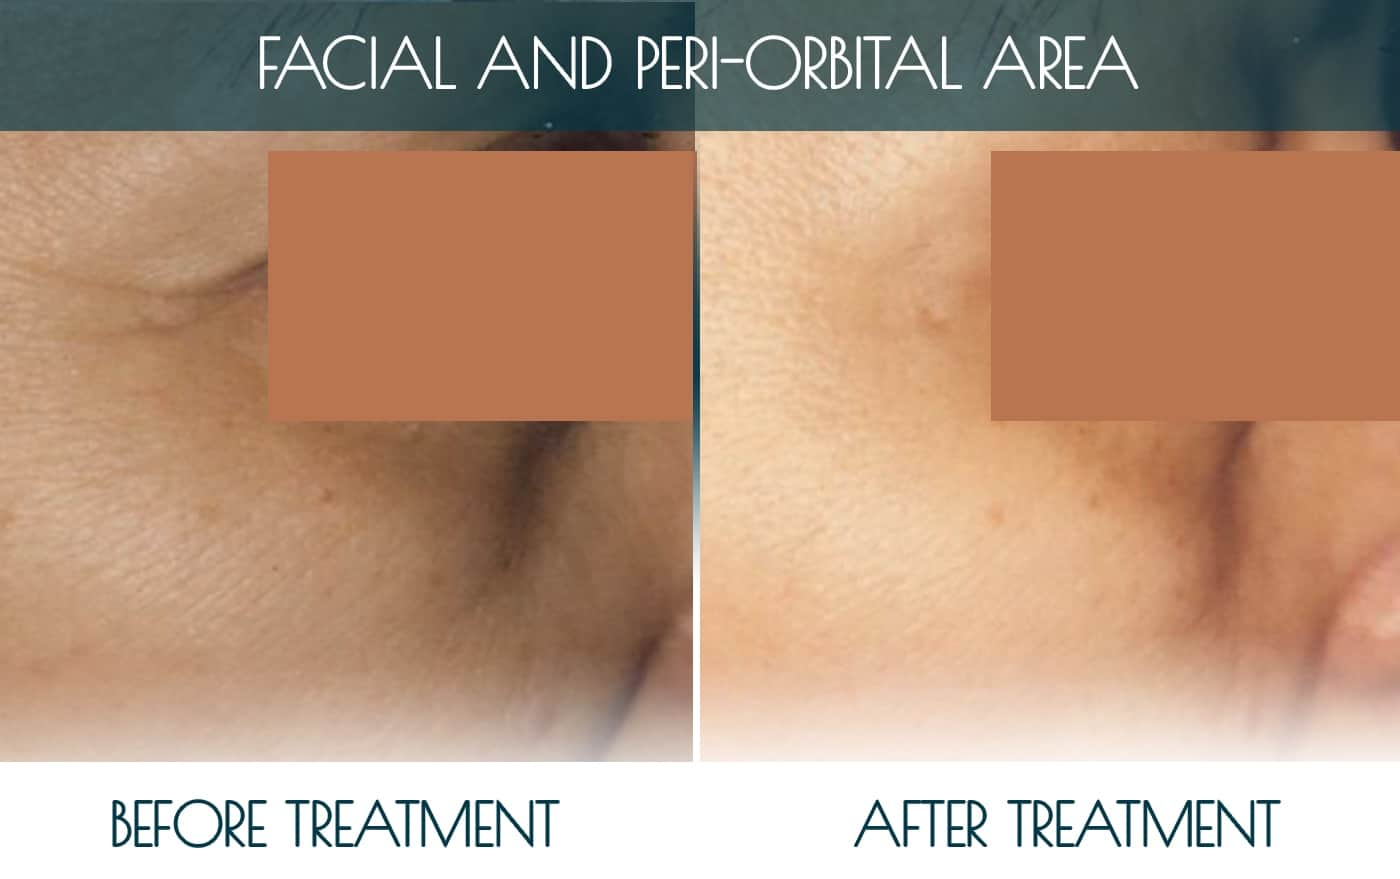 Befor-after_FACIAL-AND-PERI-ORBITAL-AREA-2-1